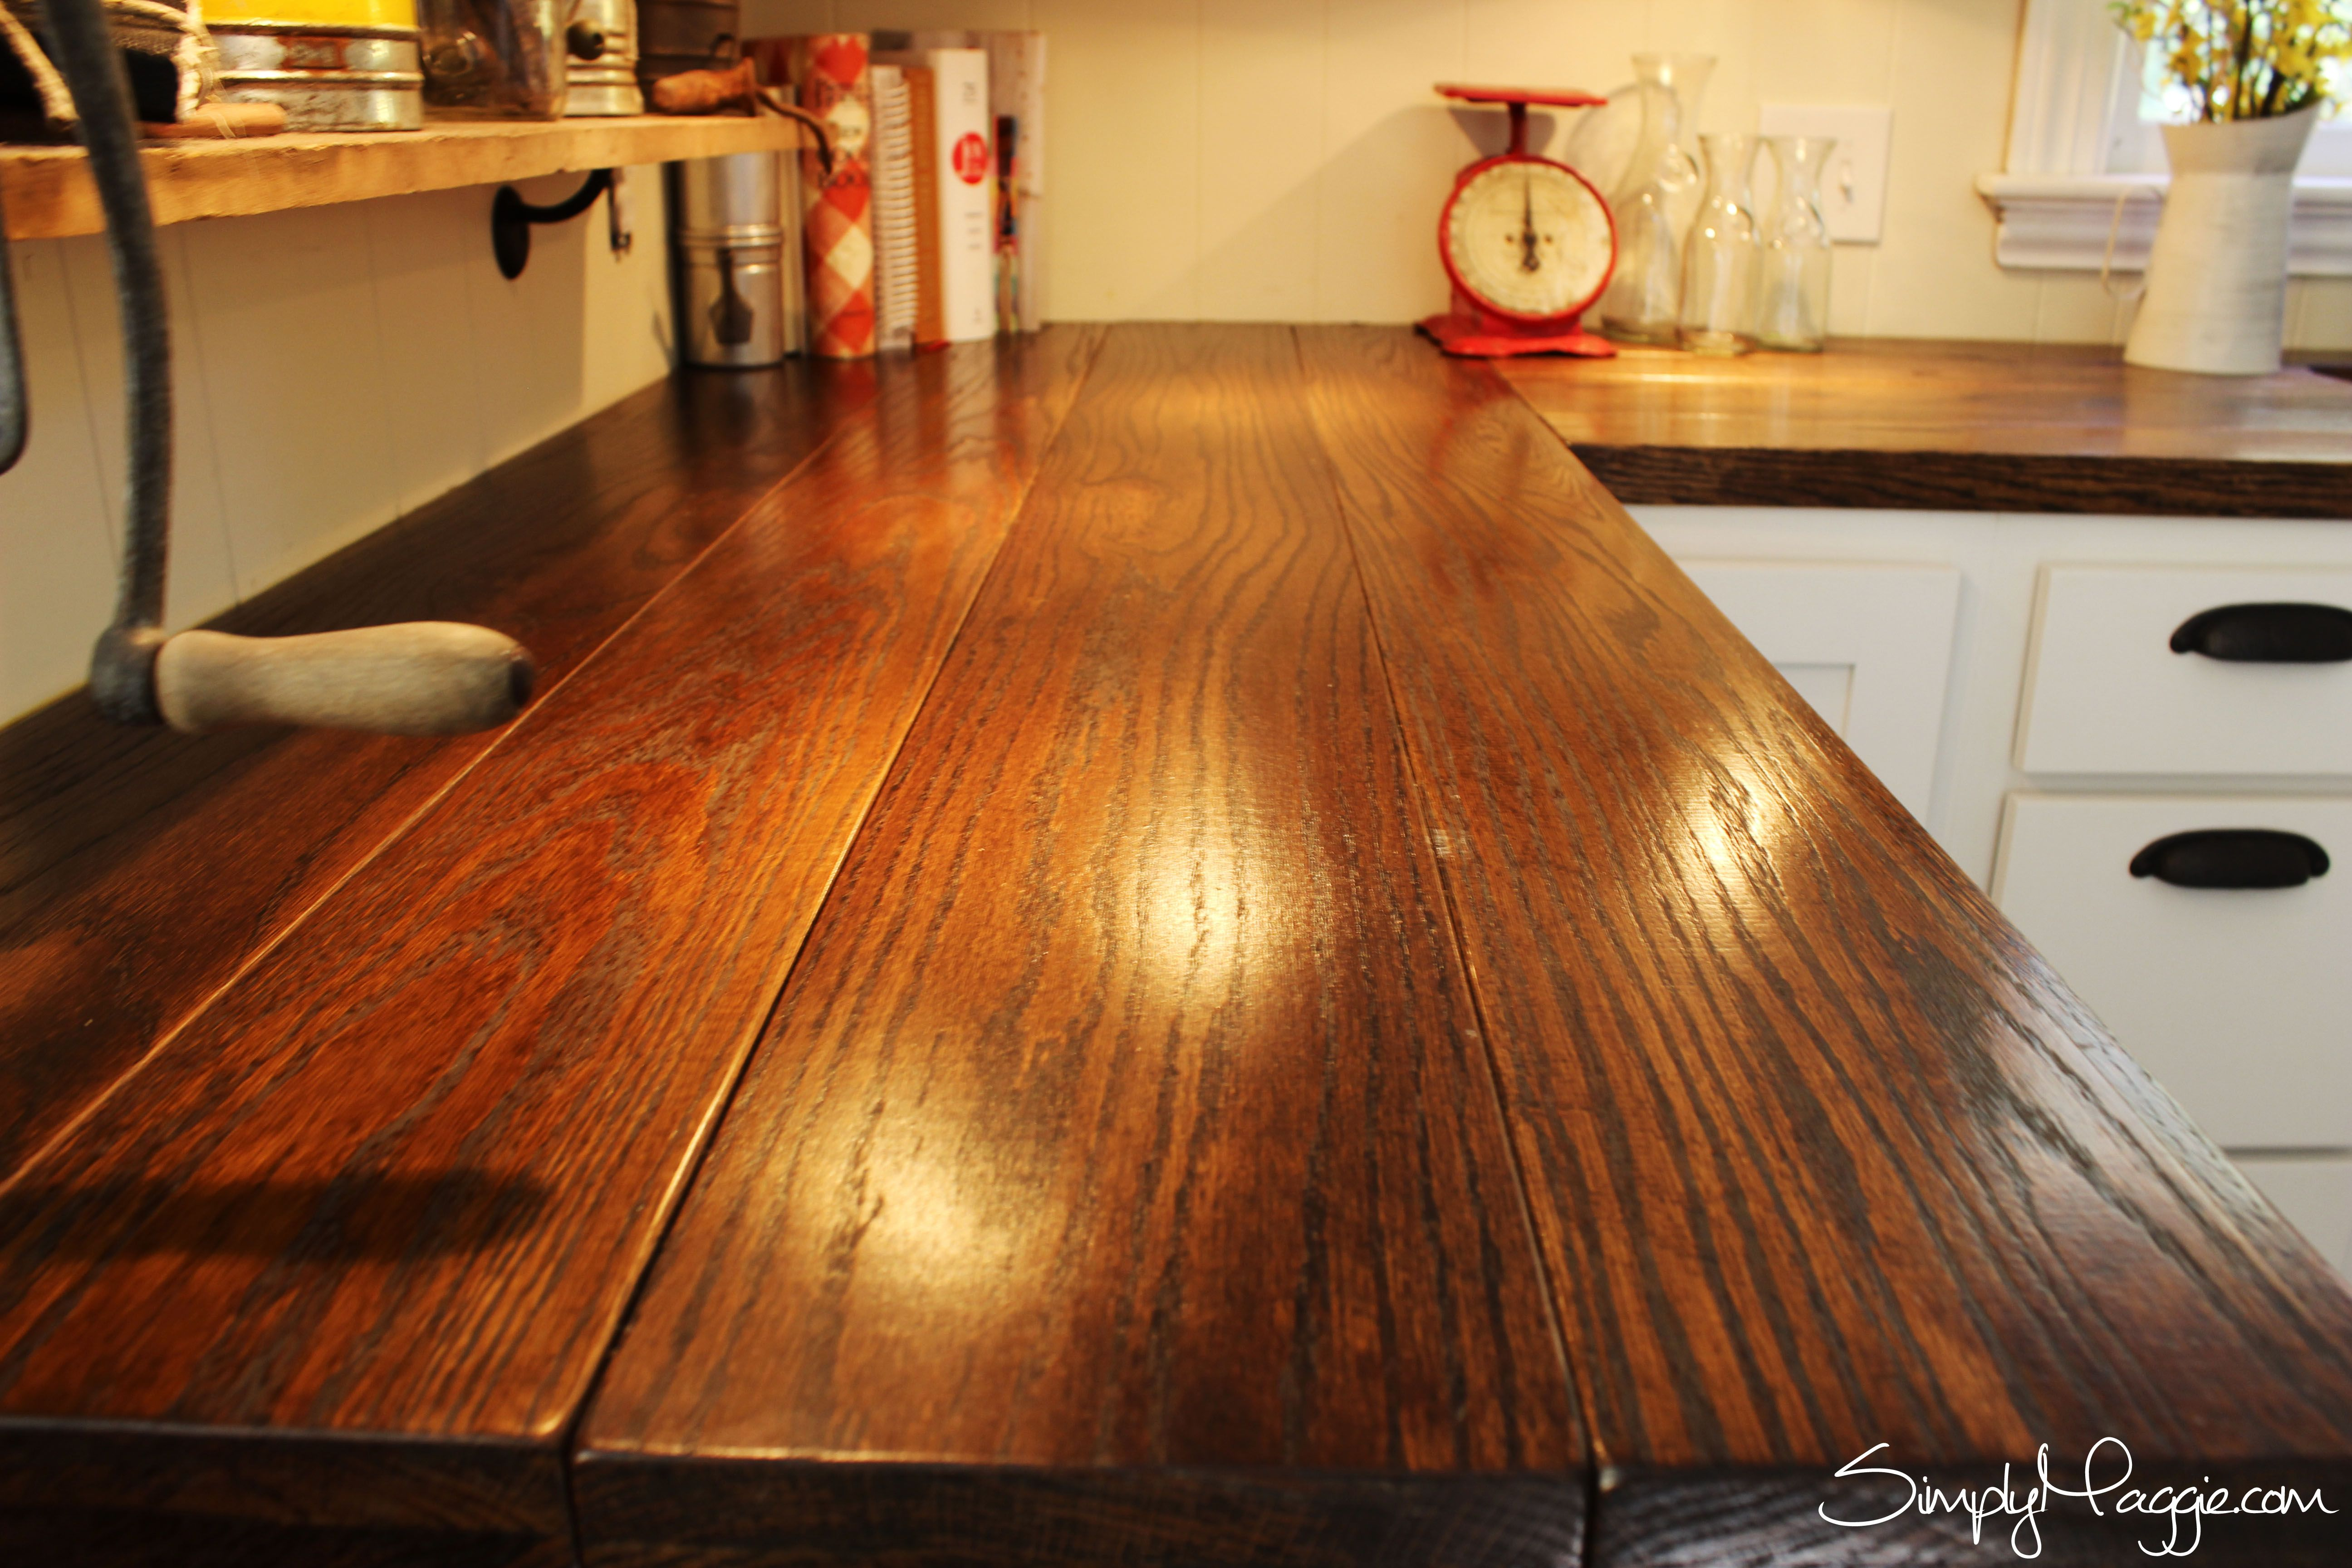 How To Build A Wood Countertop With Undermount Sink Diy Countertops Wood Countertops Home Diy